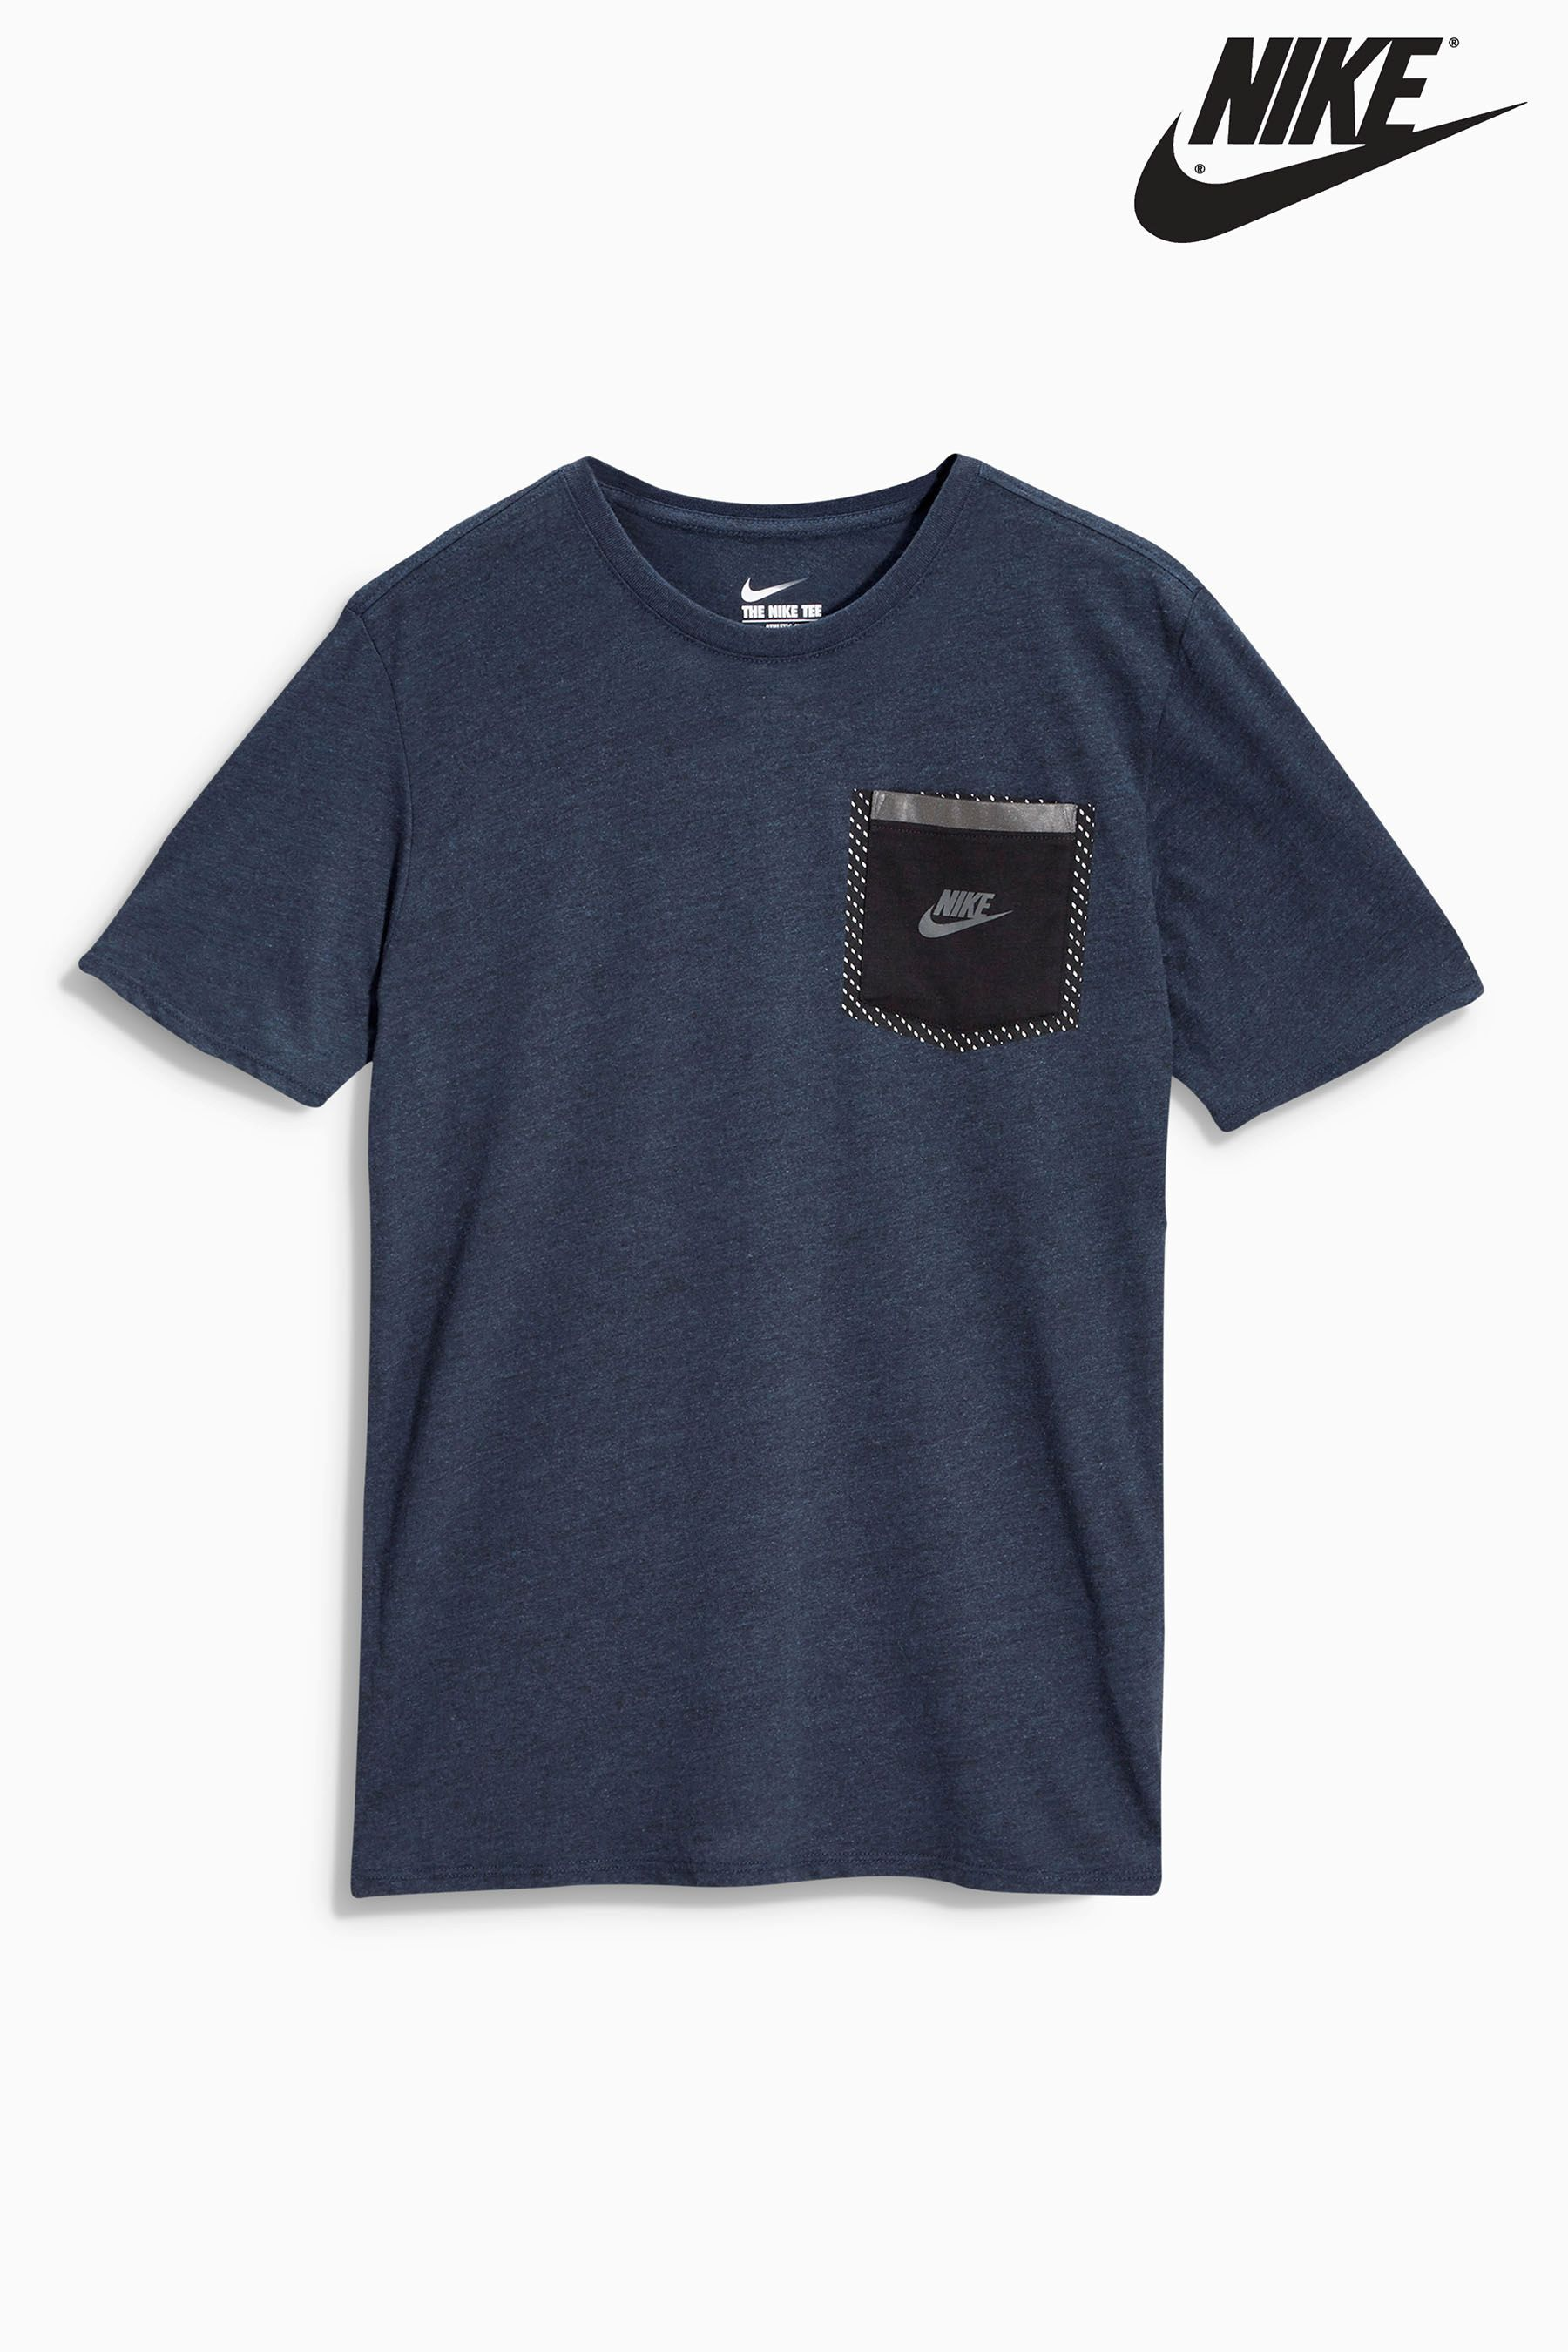 Buy Navy Nike Pocket Tee from the Next UK online shop